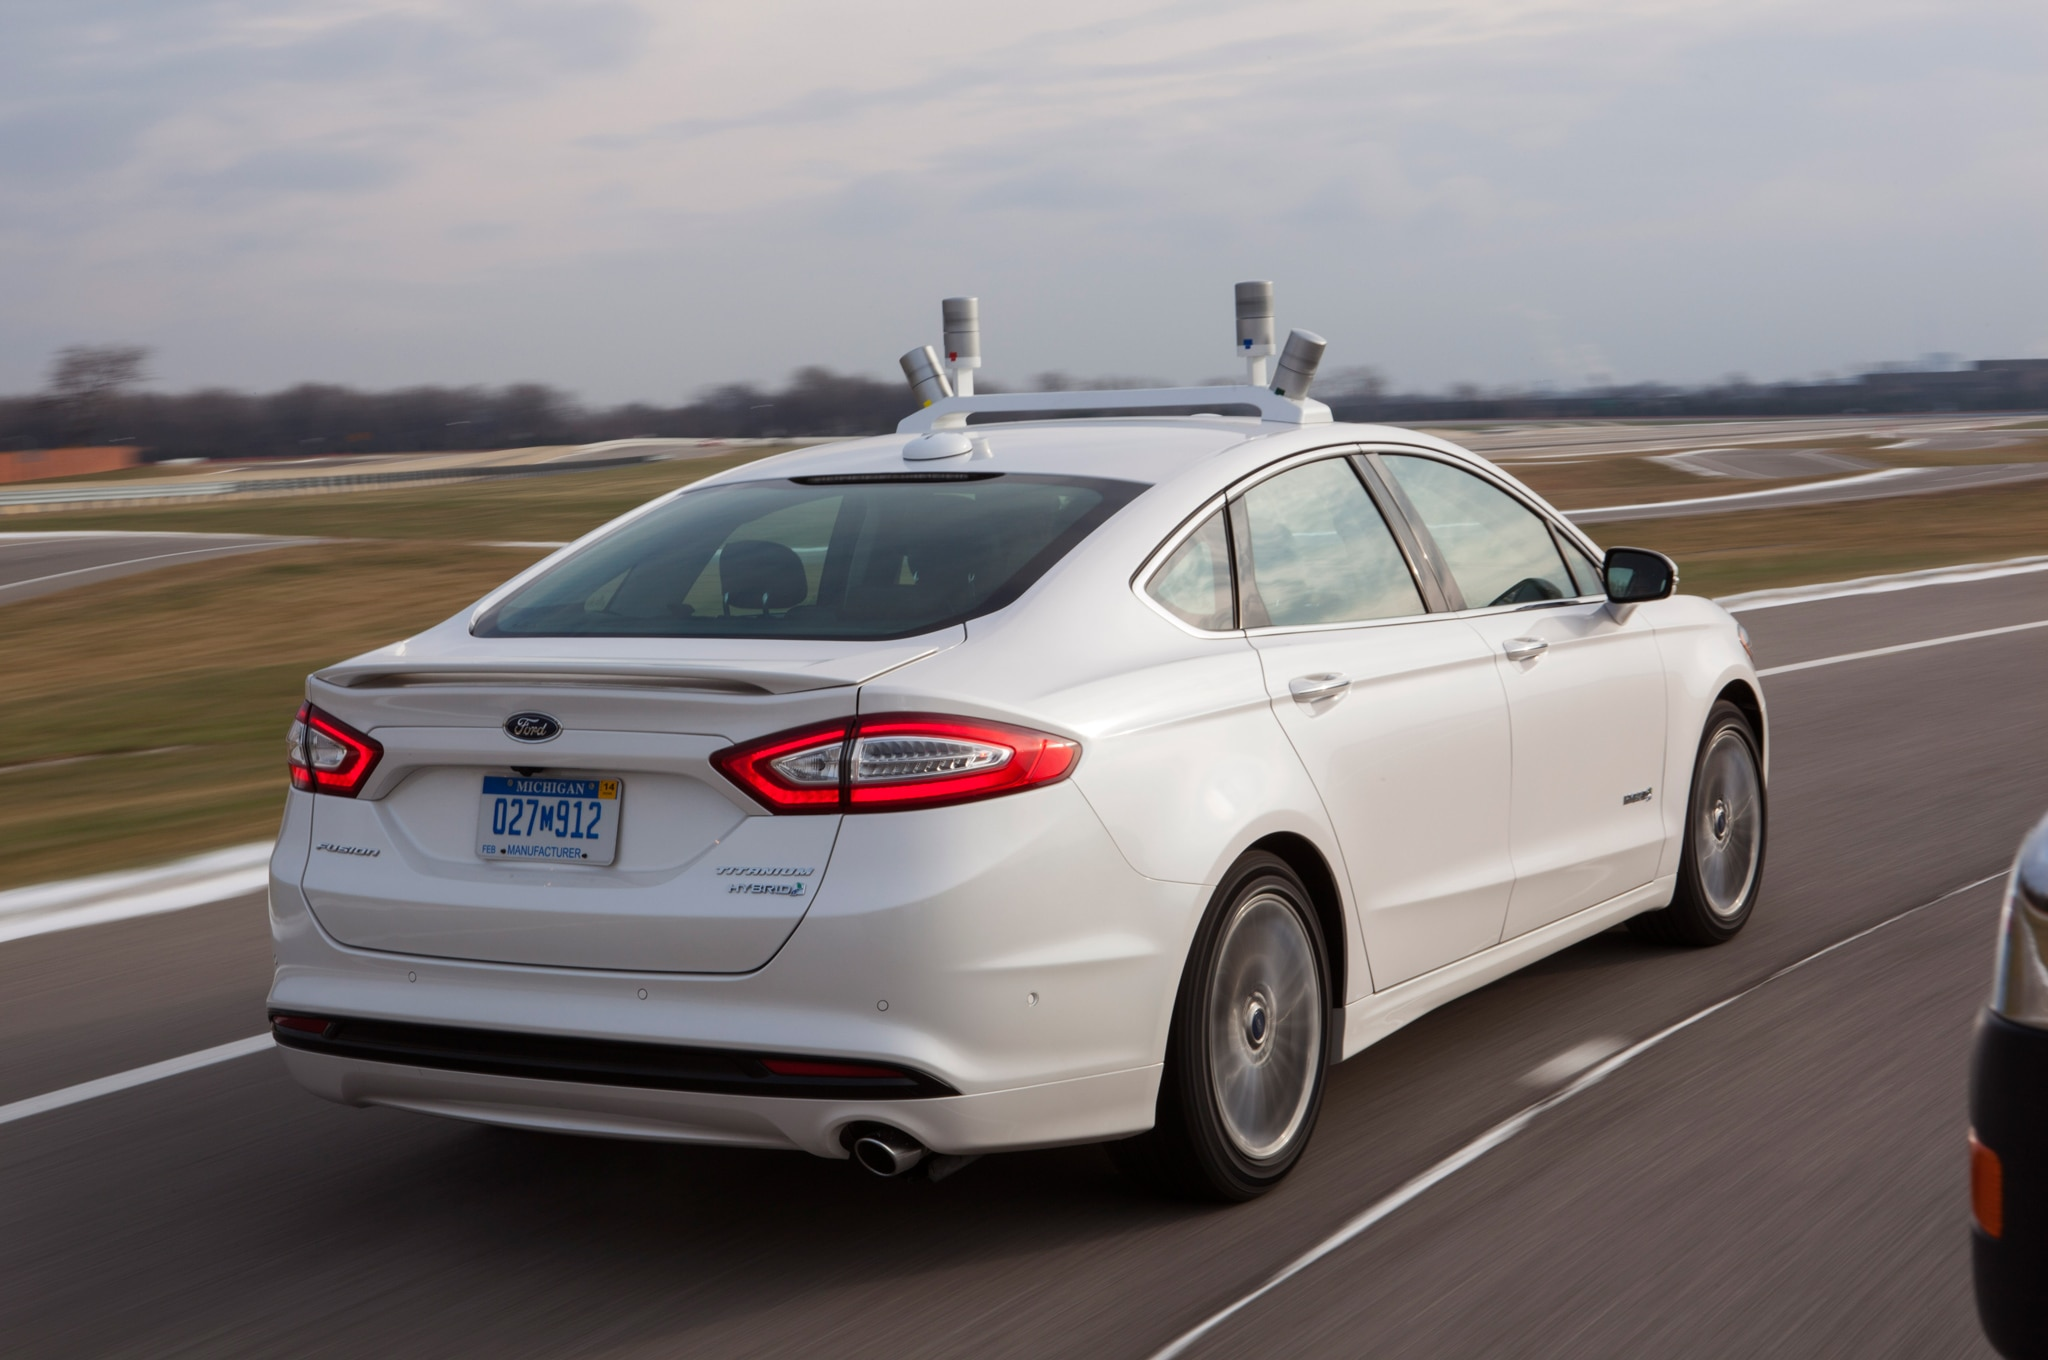 Ford Fusion Autonomous Car Lidar System Can Literally See